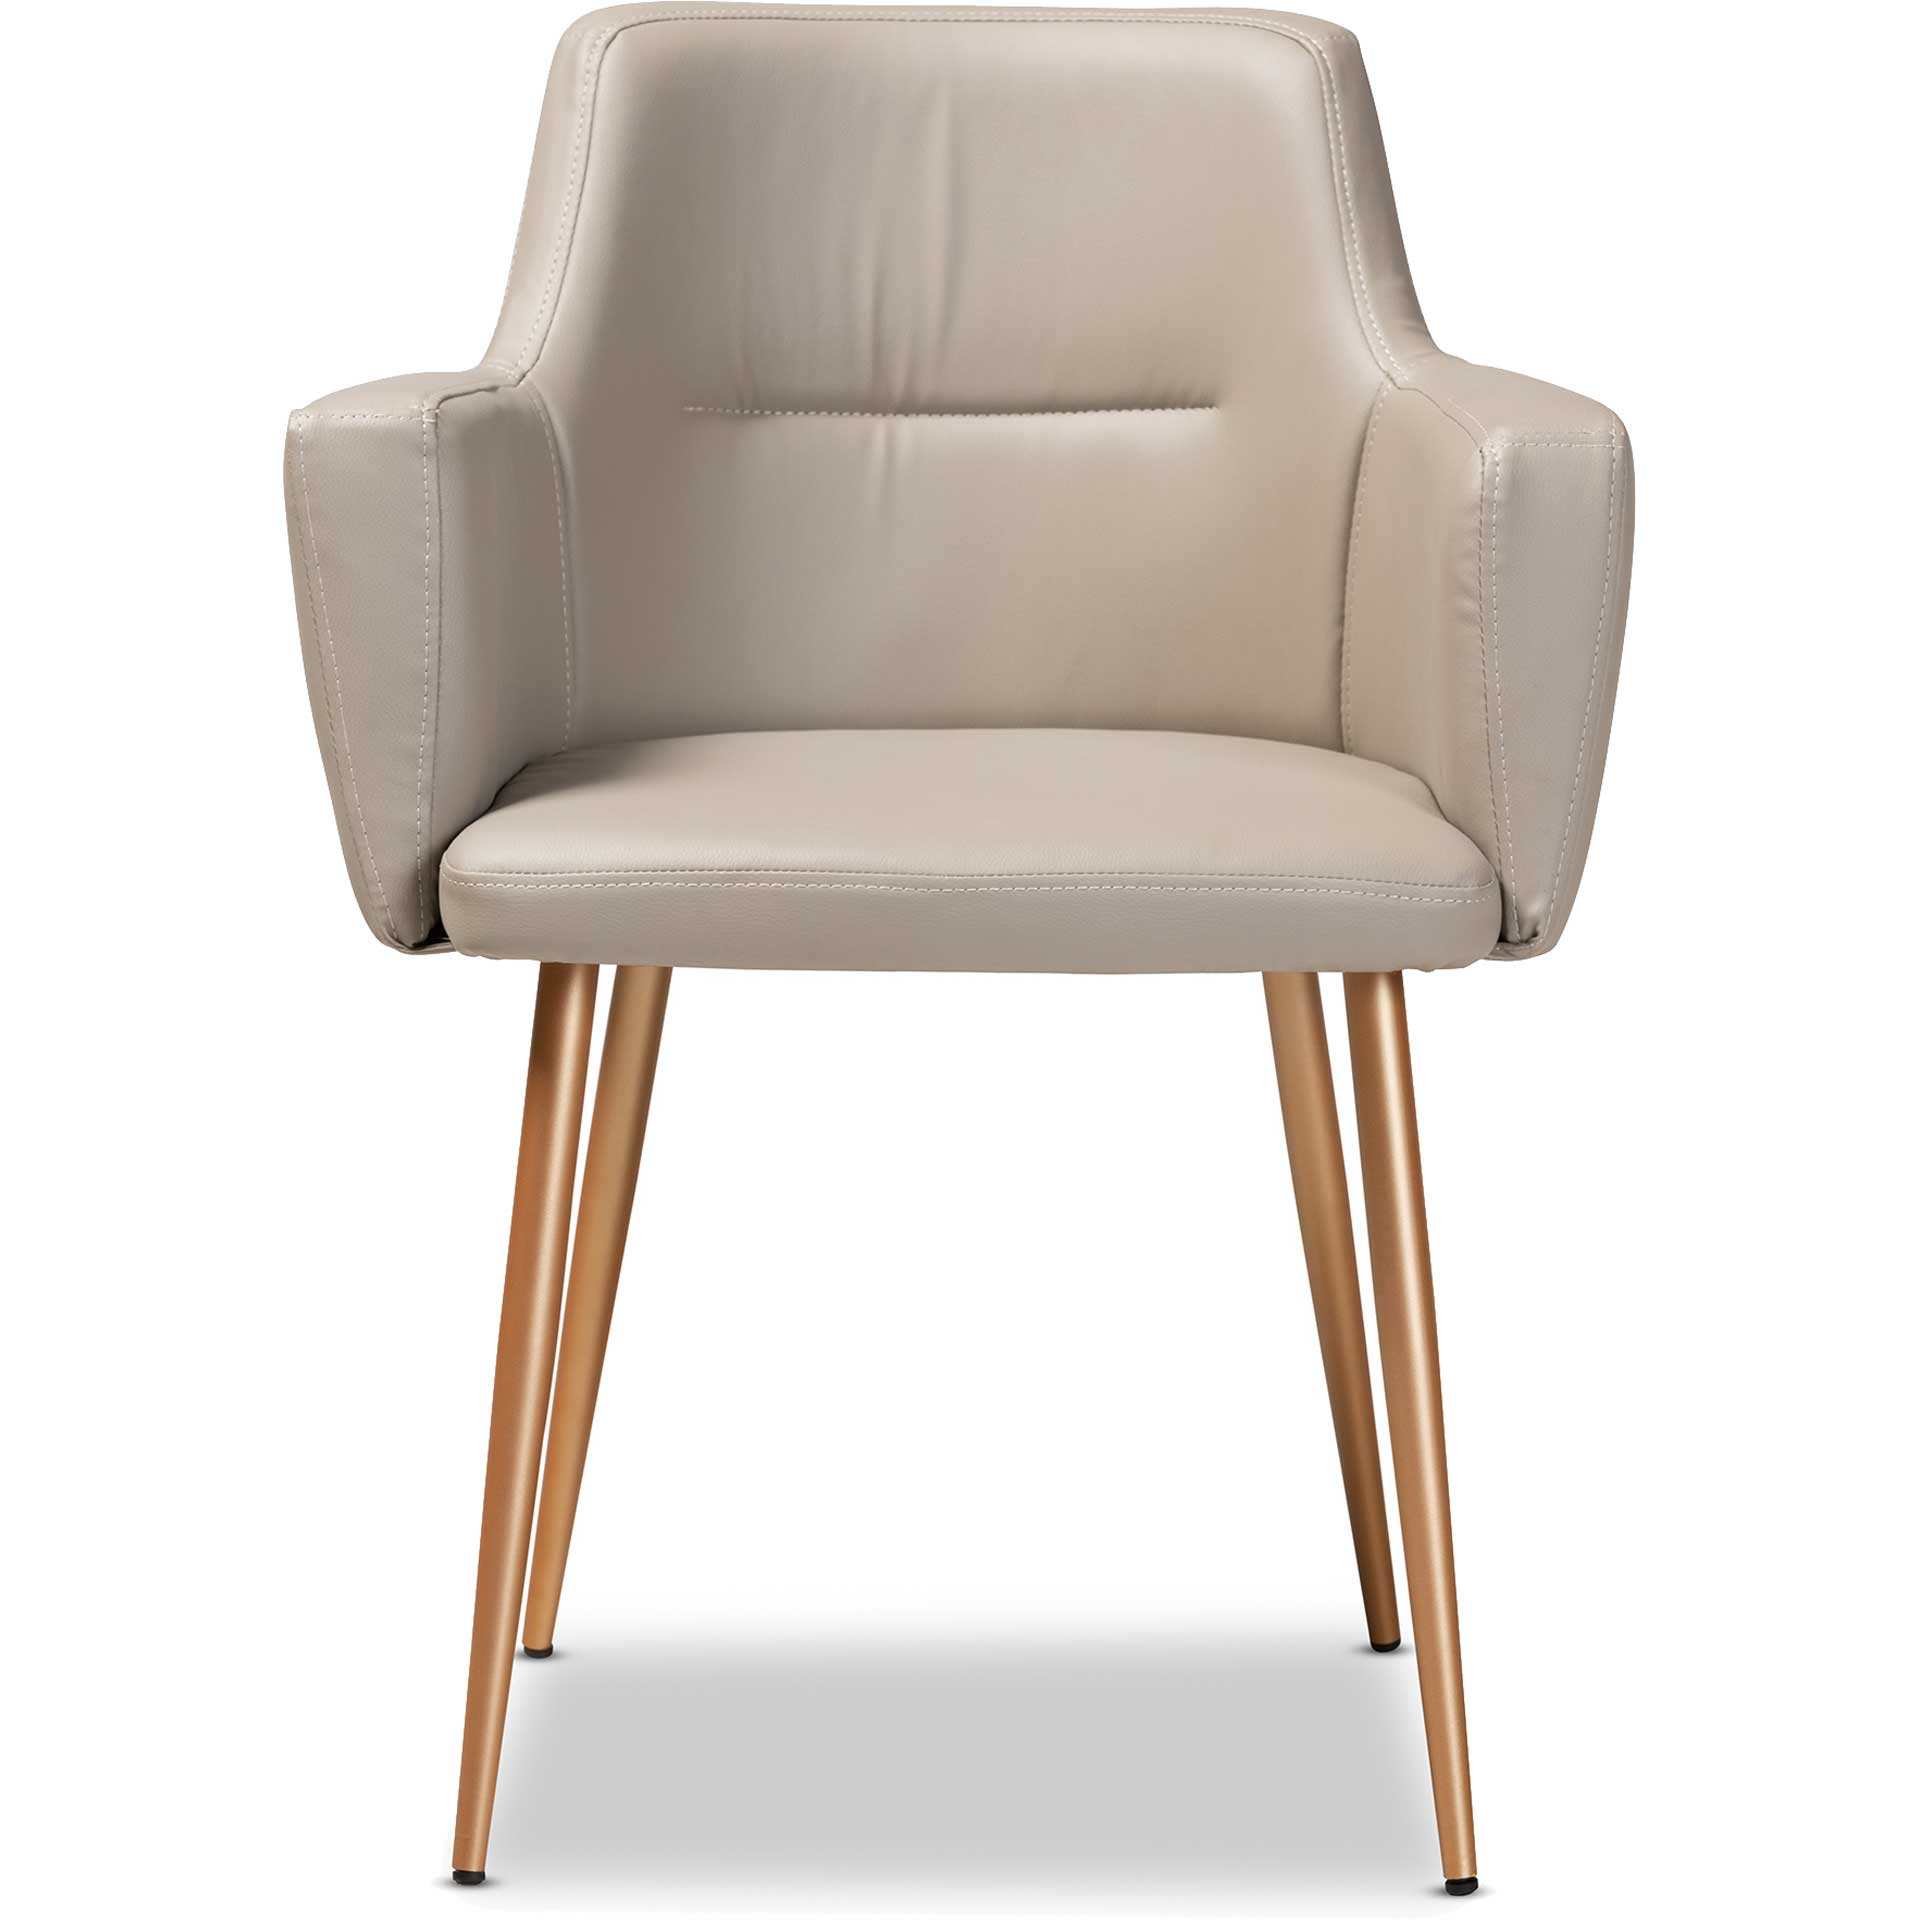 Macari Faux Leather Upholstered Dining Chair Beige/Gold